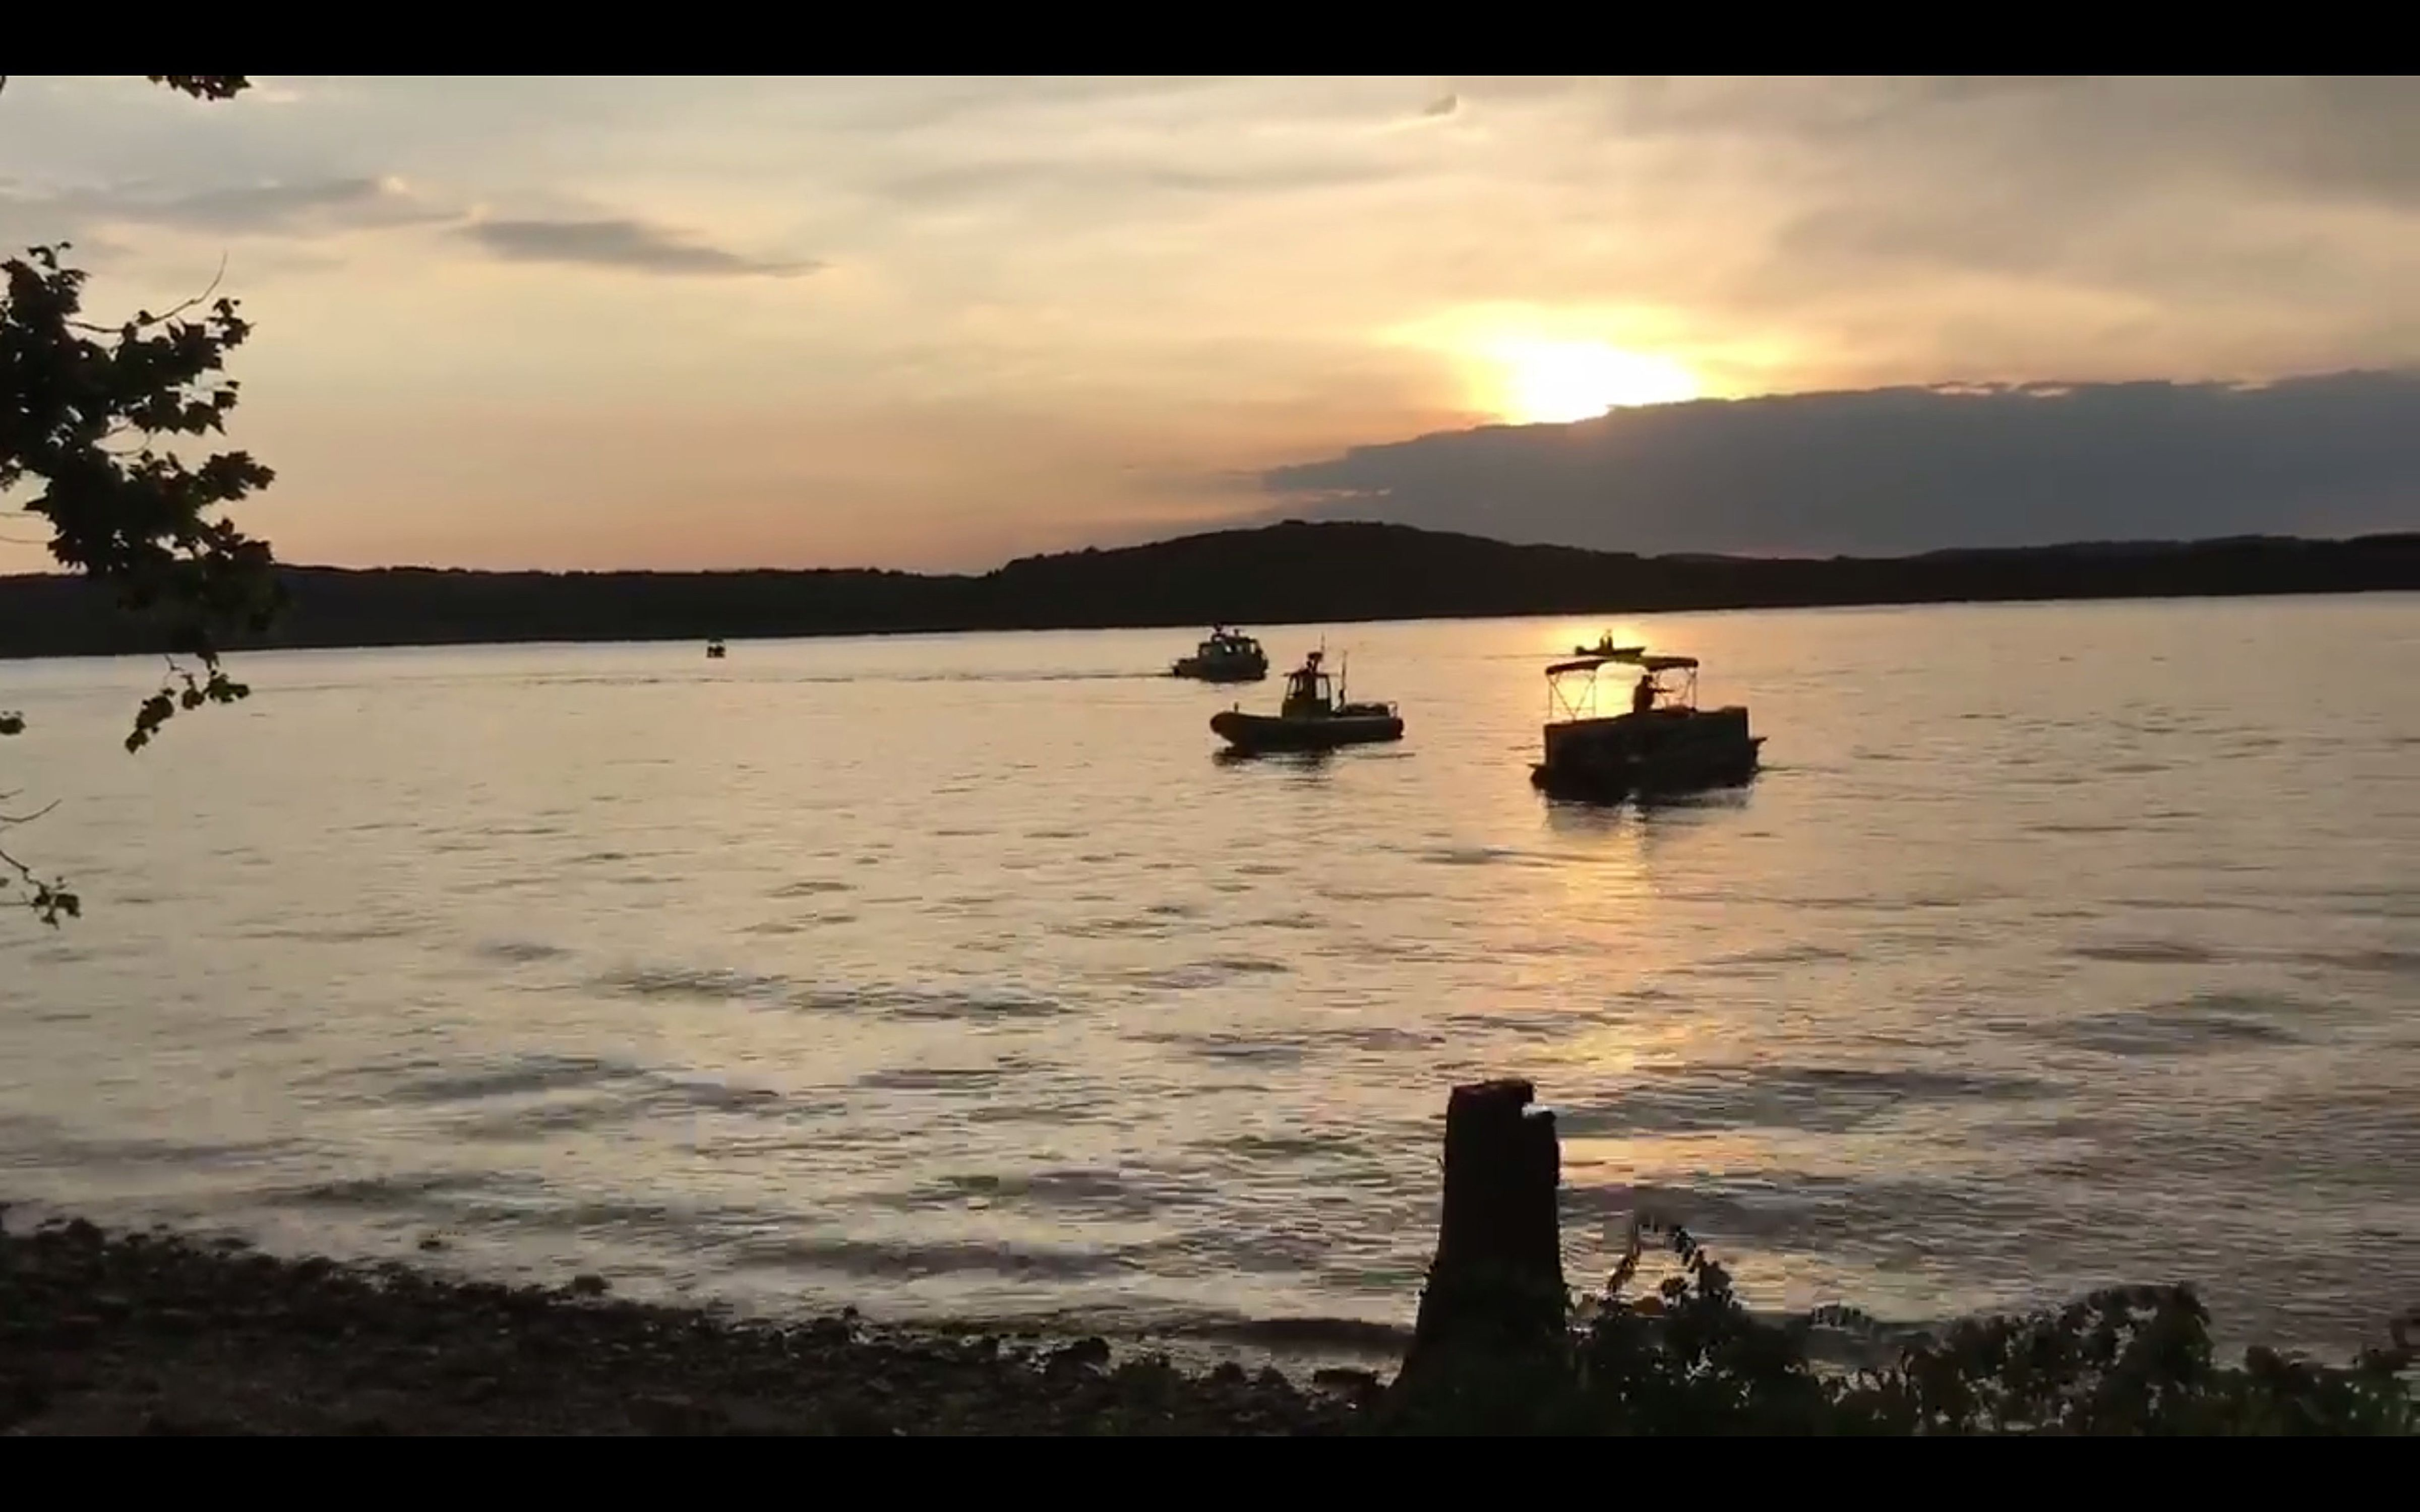 A handout frame grab made available by the Southern Stone County Fire Protection District shows responDing agencies after an amphibious duck boat reportedly capsized on Table Rock Lake in Branson, Missouri on July 19, 2018. According to media reports, at least 11 people were killed, and several others are missing after a Ride the Ducks tourist boat capsized with more than 30 people aboard. Weather conditions are believed to have contributed to the accident.